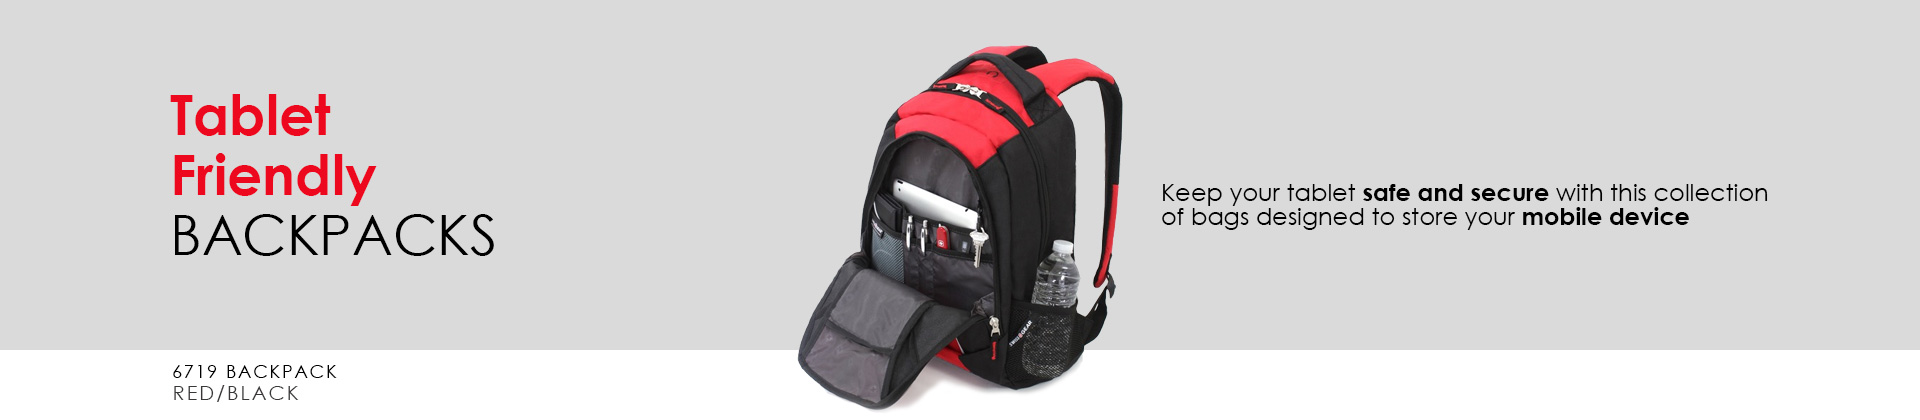 Swissgear Tablet Friendly Backpacks